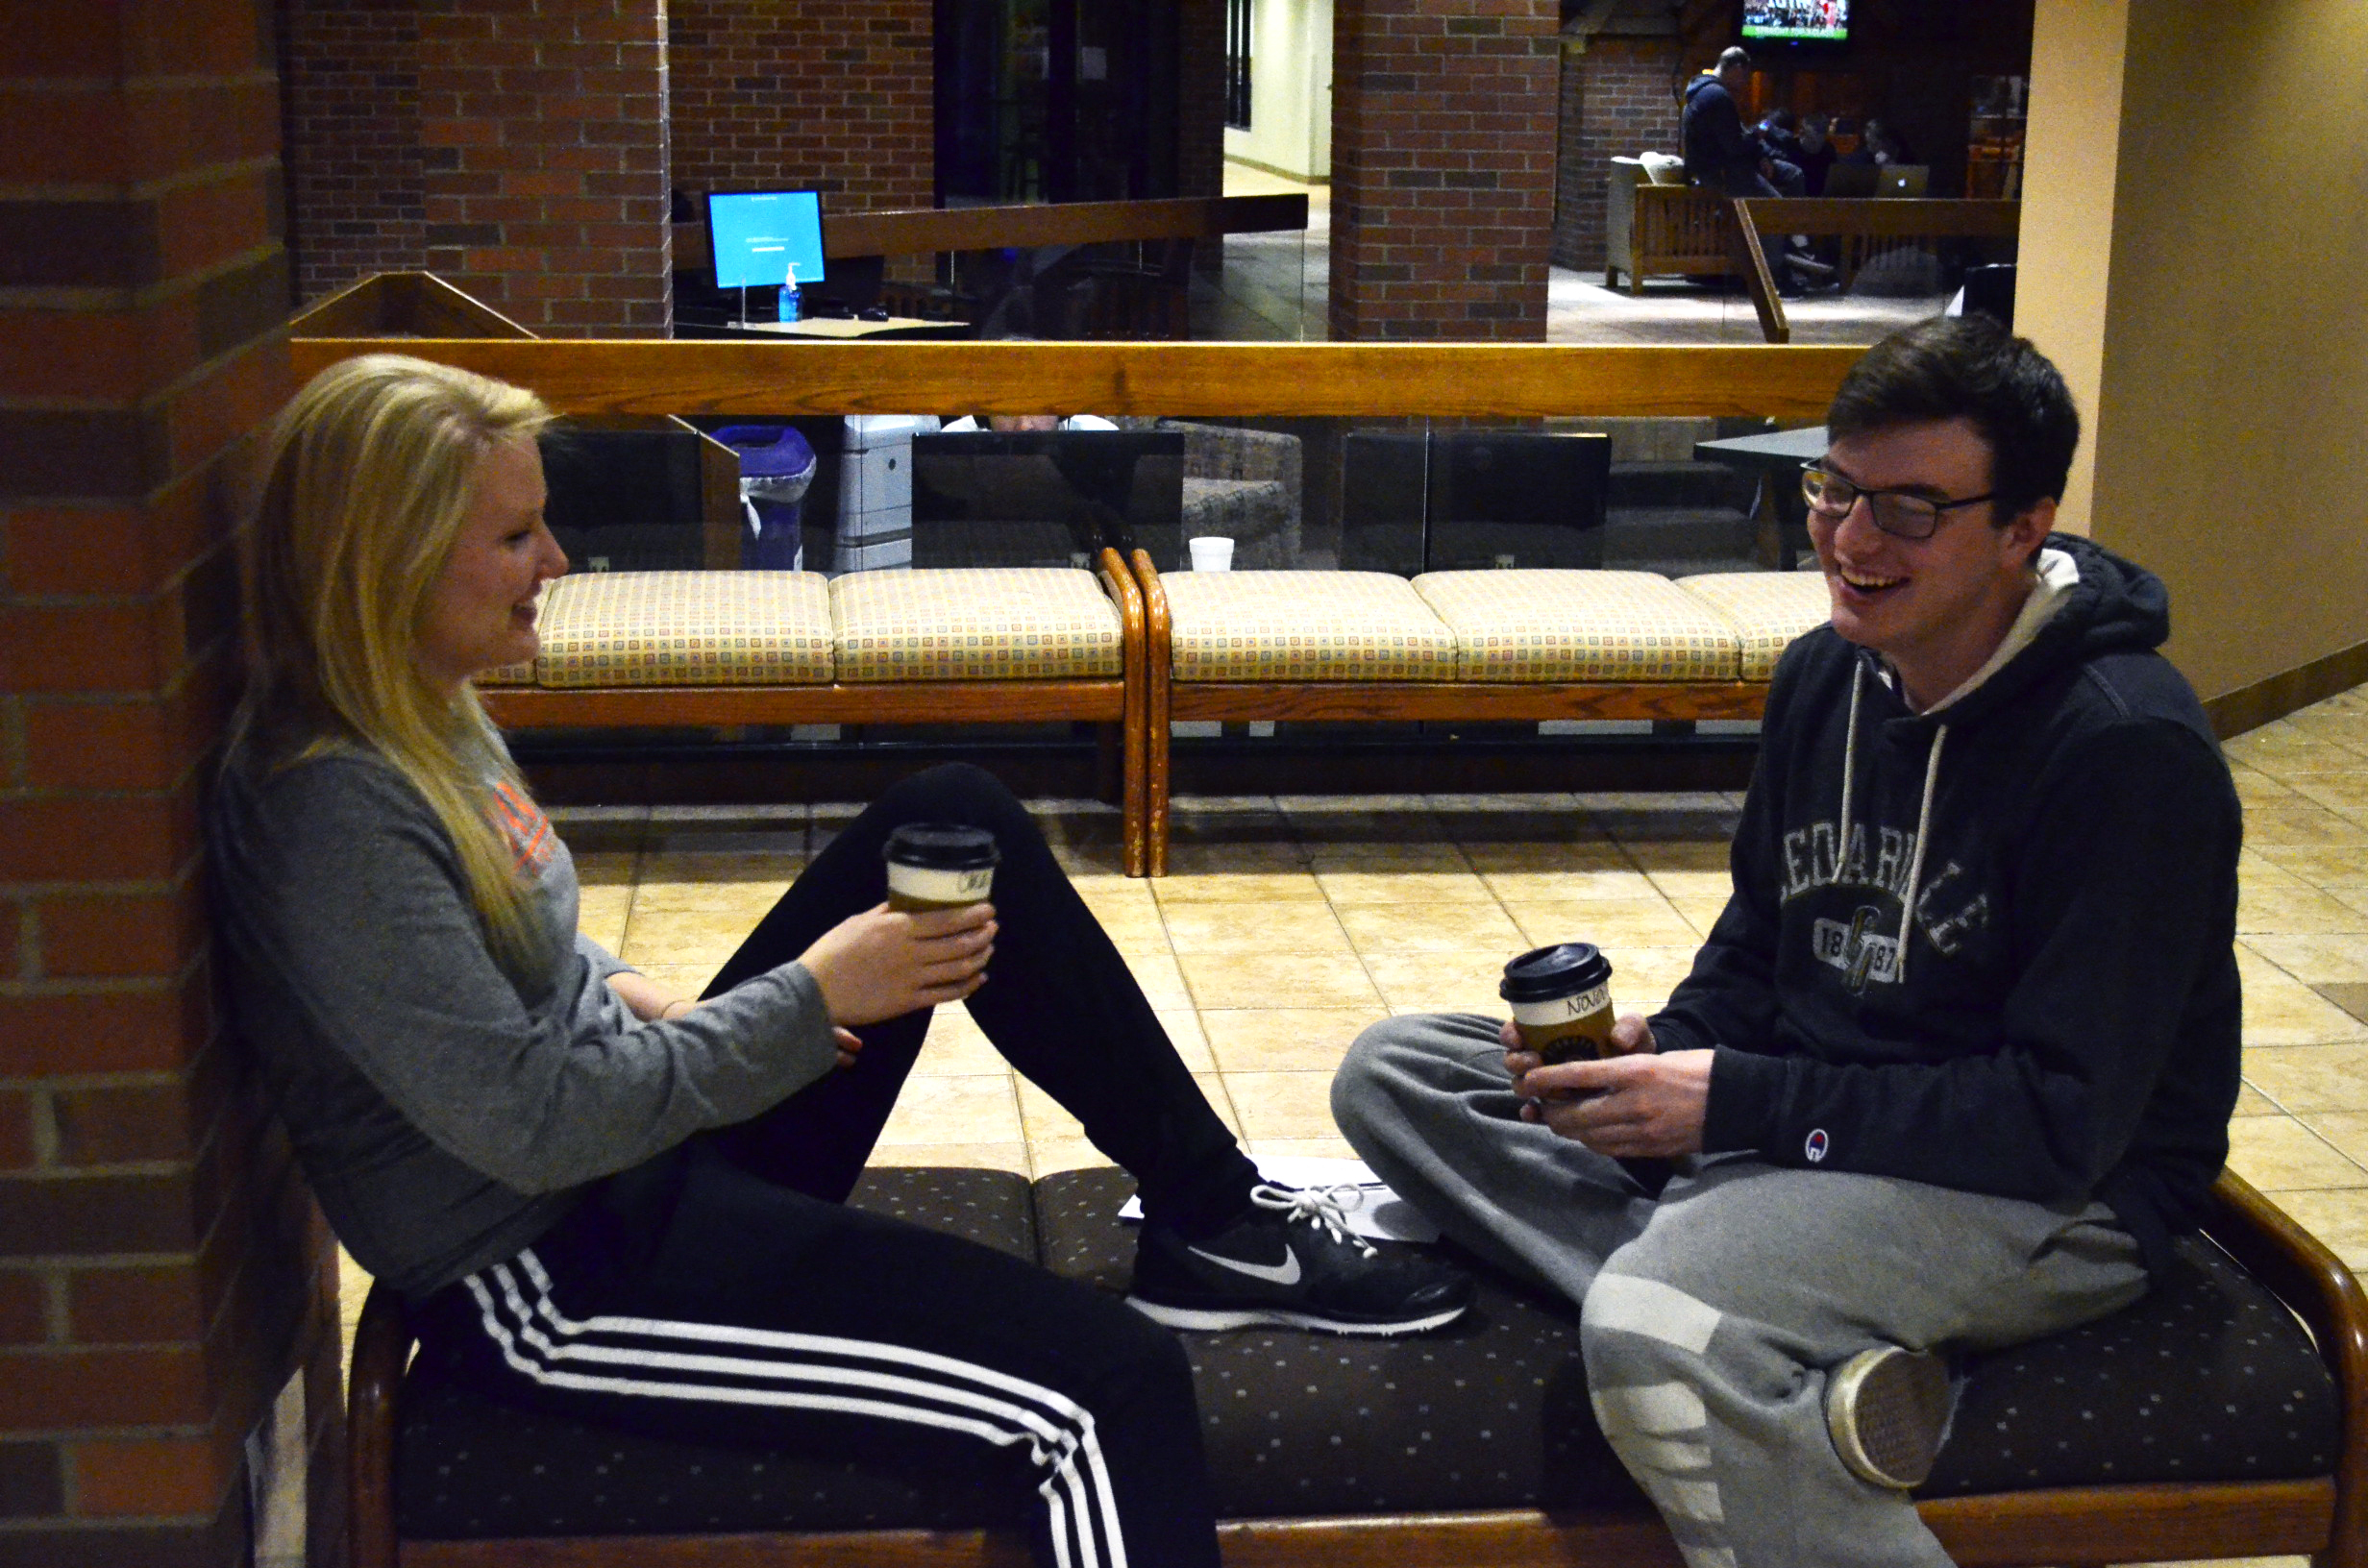 """""""Find a place to sit, relax, and enjoy the conversation. It is really fun if you put some effort into it. Make sure your phone is off or put away though [smiles]."""" (Freshmen Kimmy Powell and Noah Augustus enjoy quality time at the most recent Coffee & Community. [Photo courtesy of Allyson Weislogel])"""